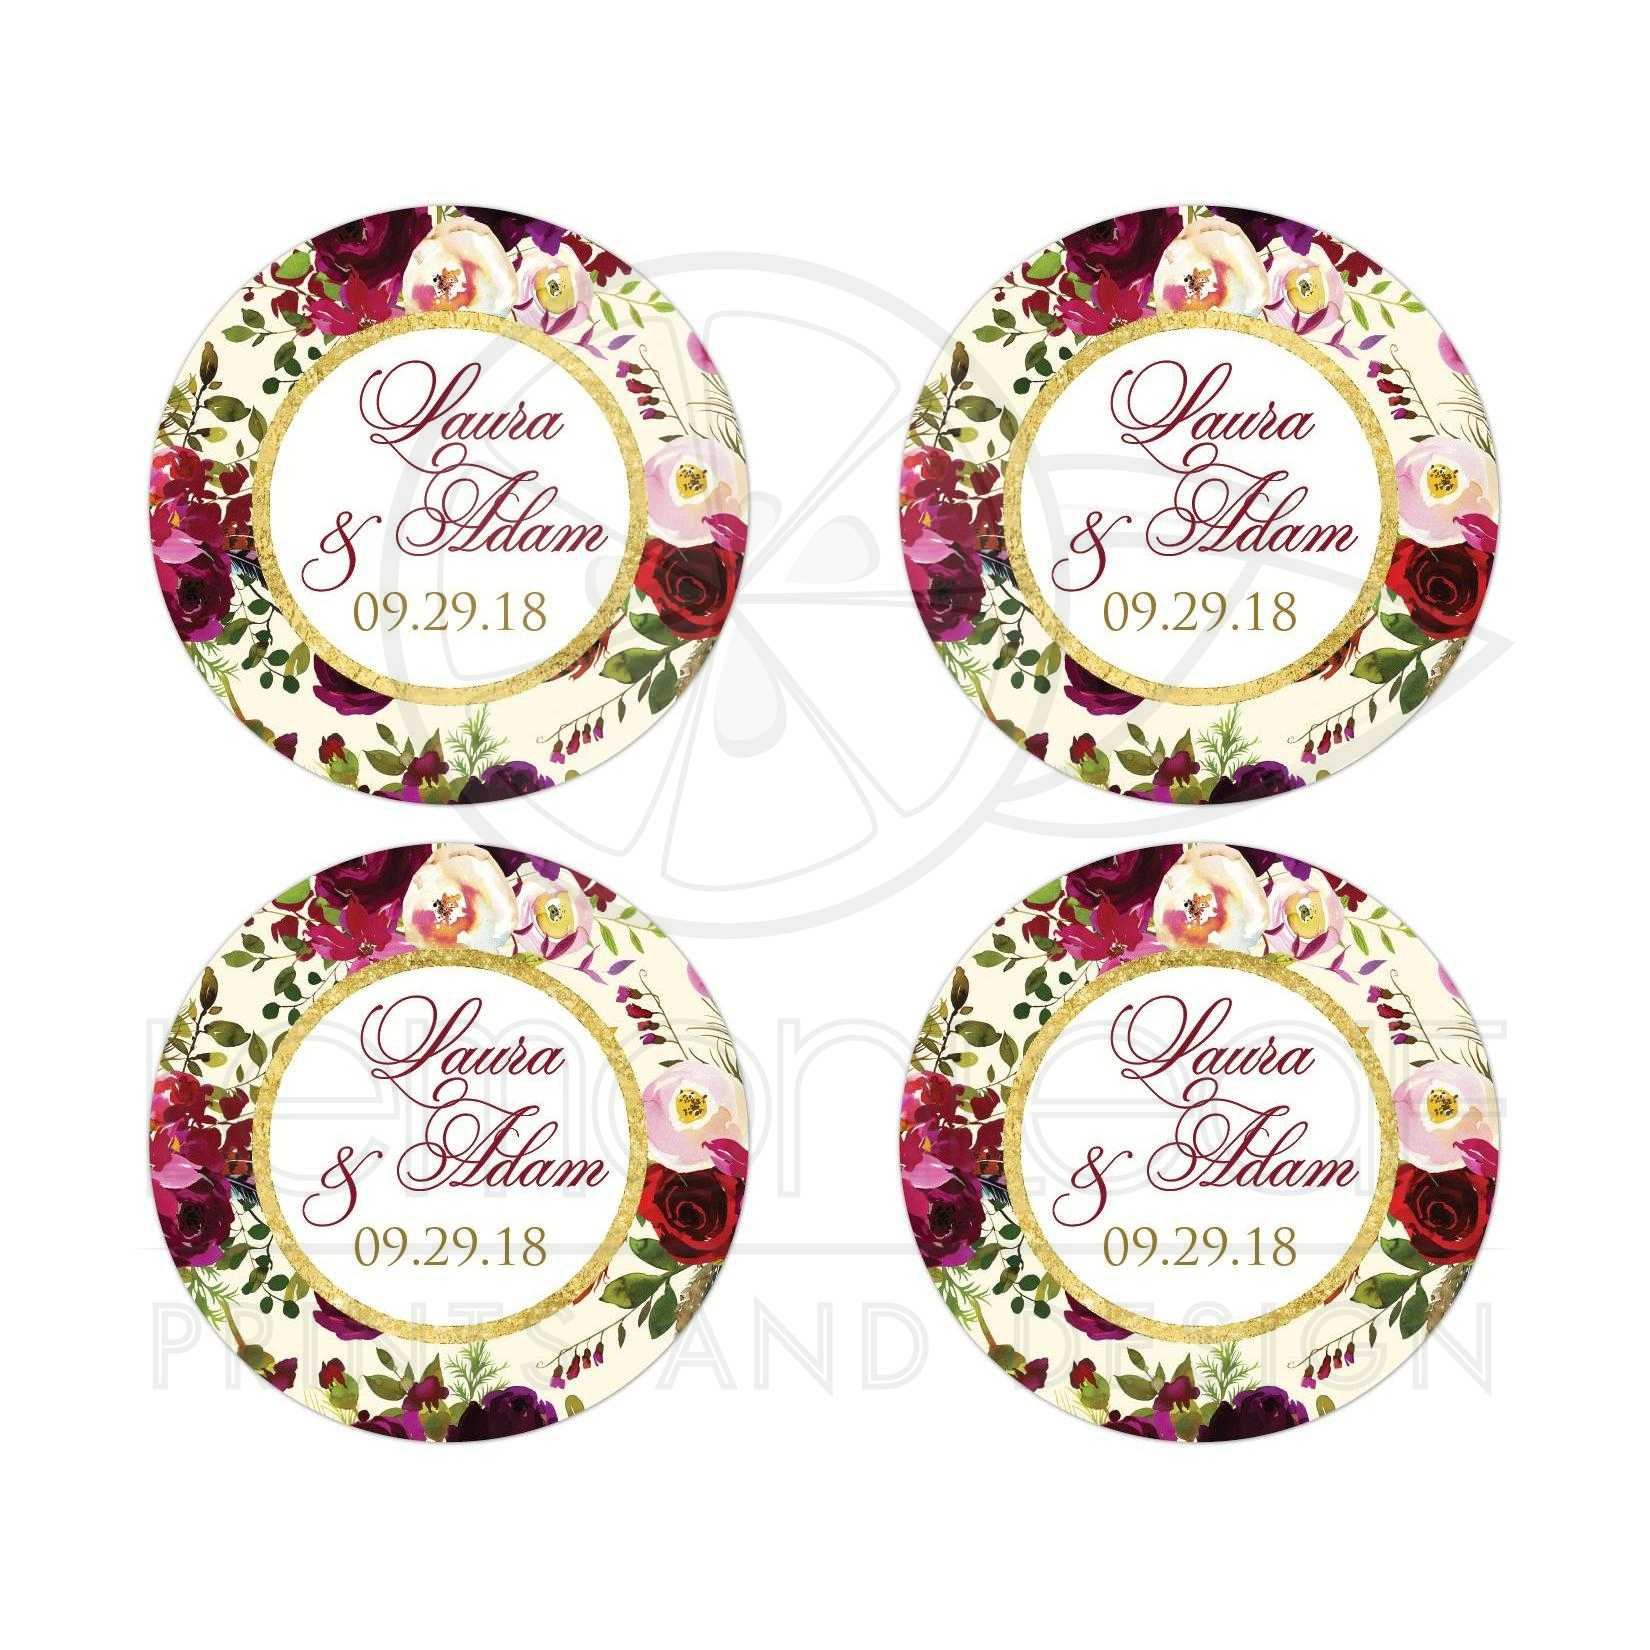 Beautiful burgundy watercolor flowers and feathers wedding favor sticker simulated gold